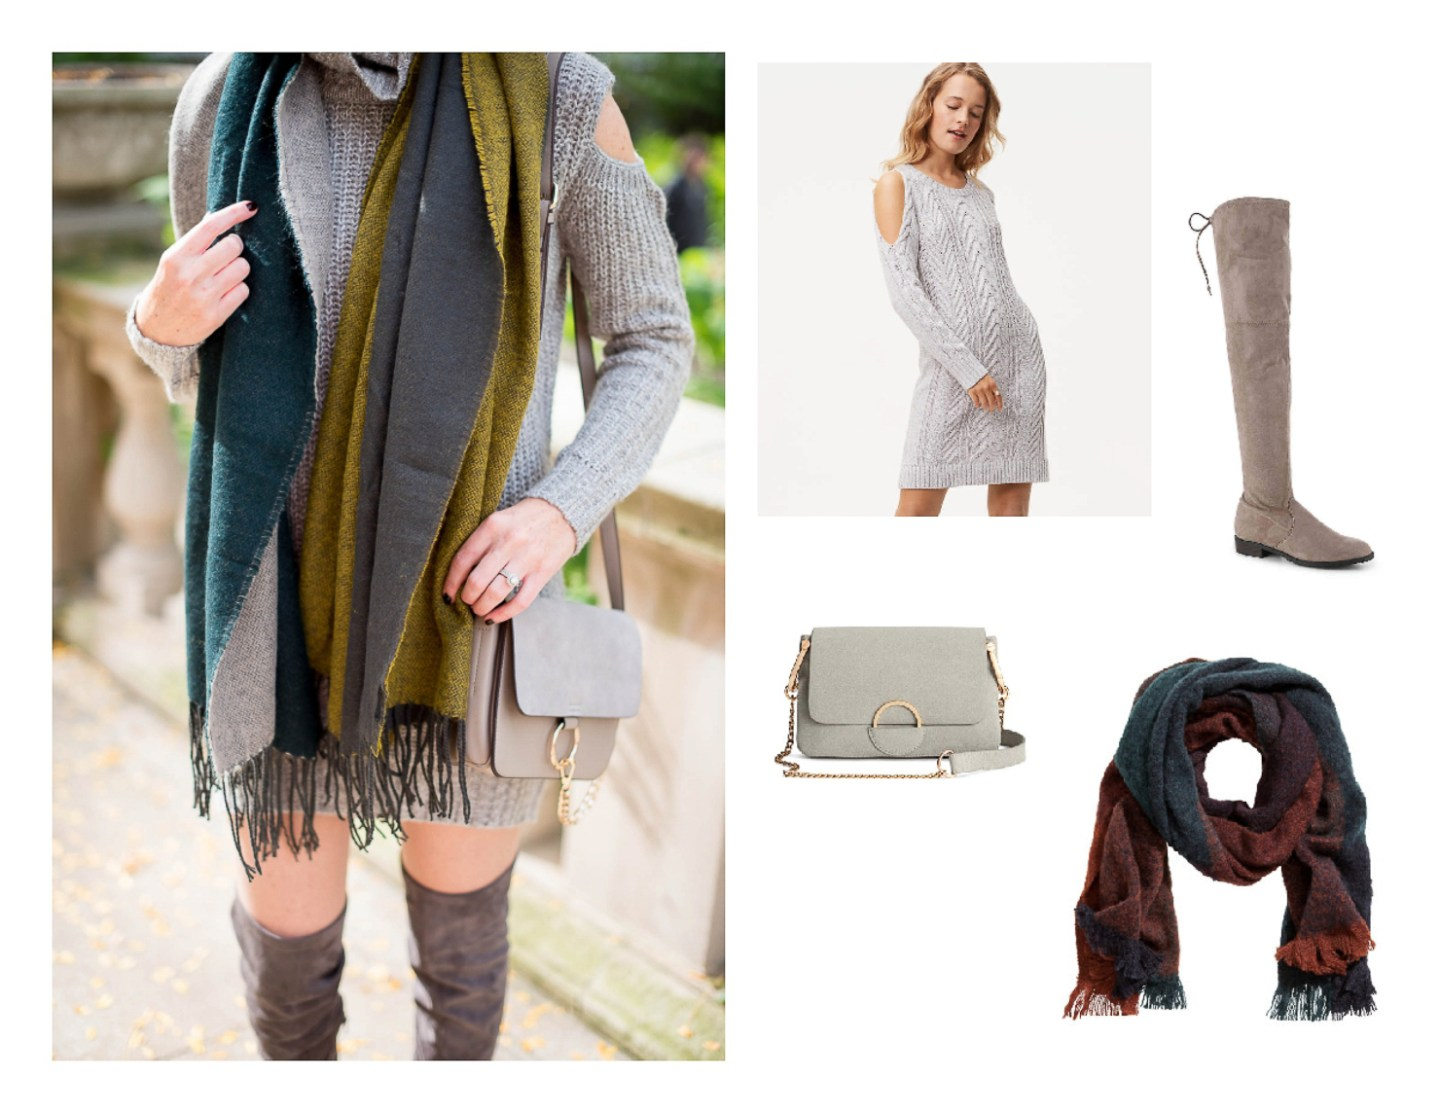 scarf and sweaterdress outfit, easy thanksgiving outfit ideas, casual thanksgiving look